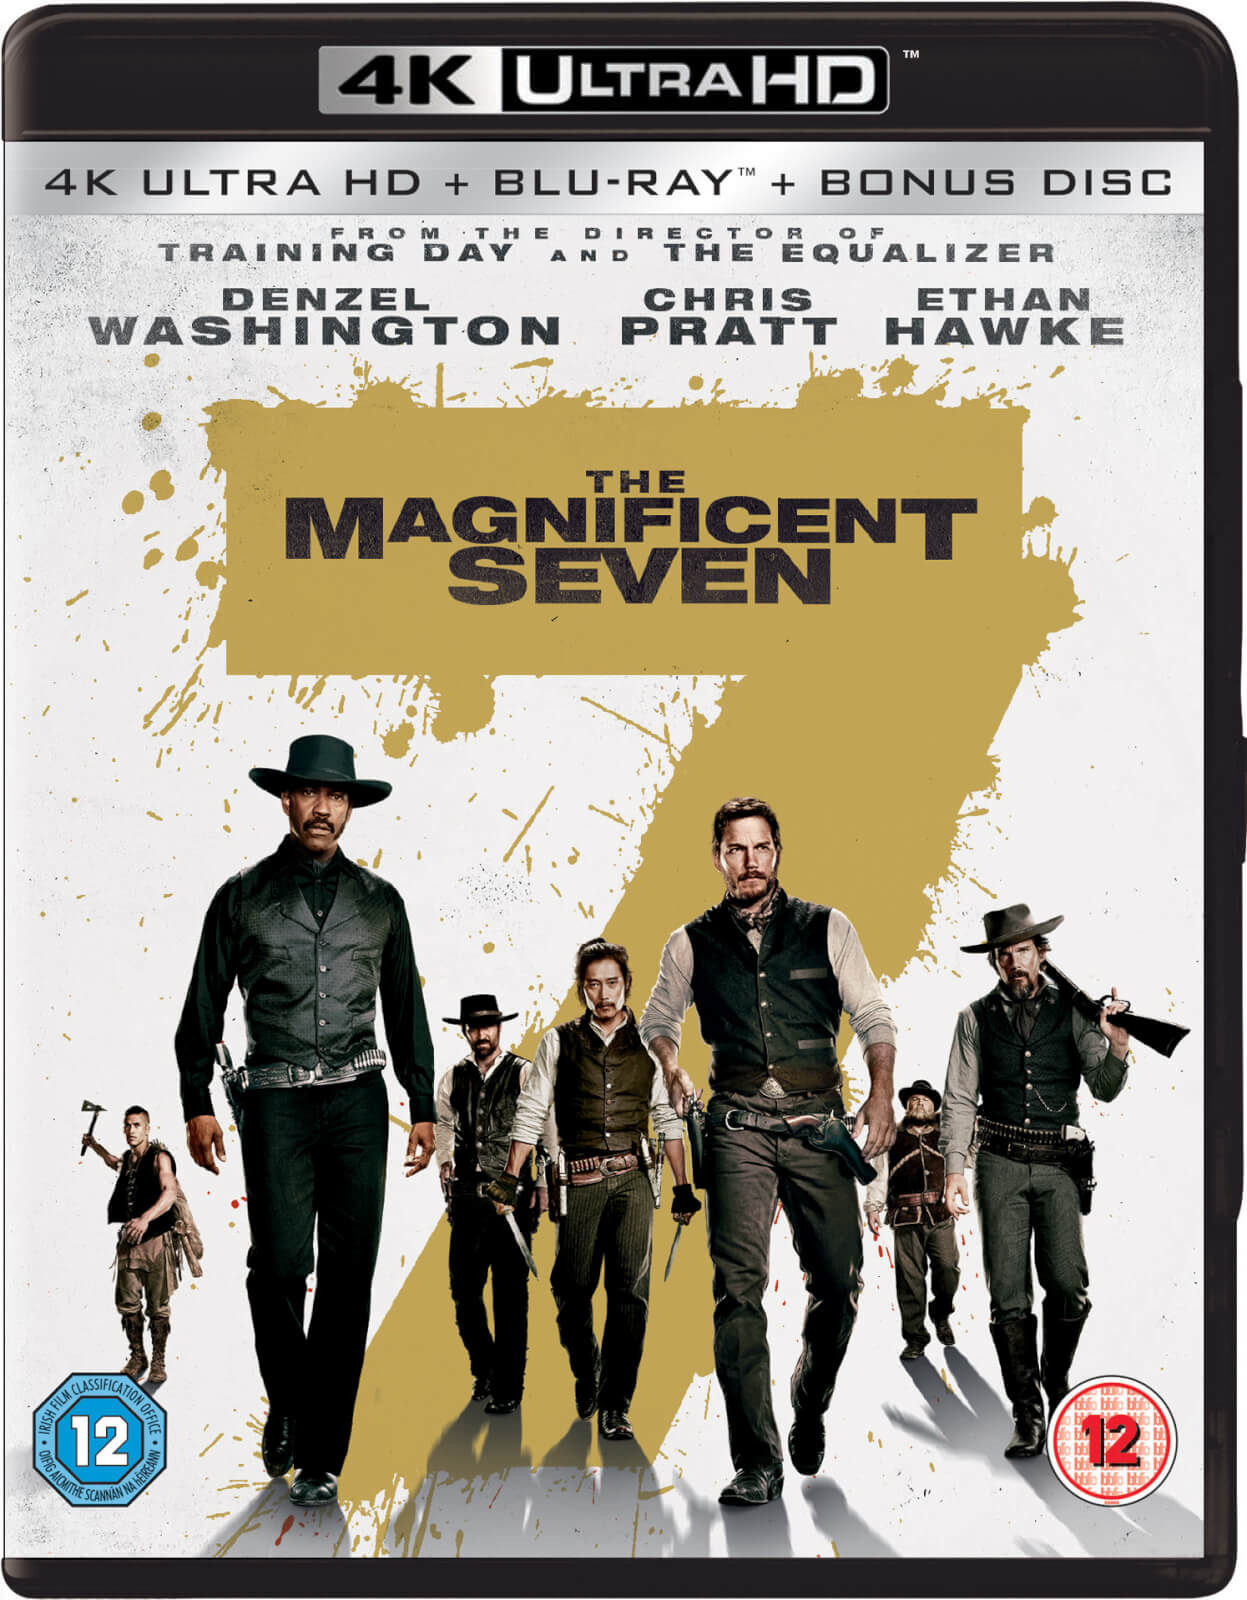 The Magnificent Seven - 4K Ultra HD